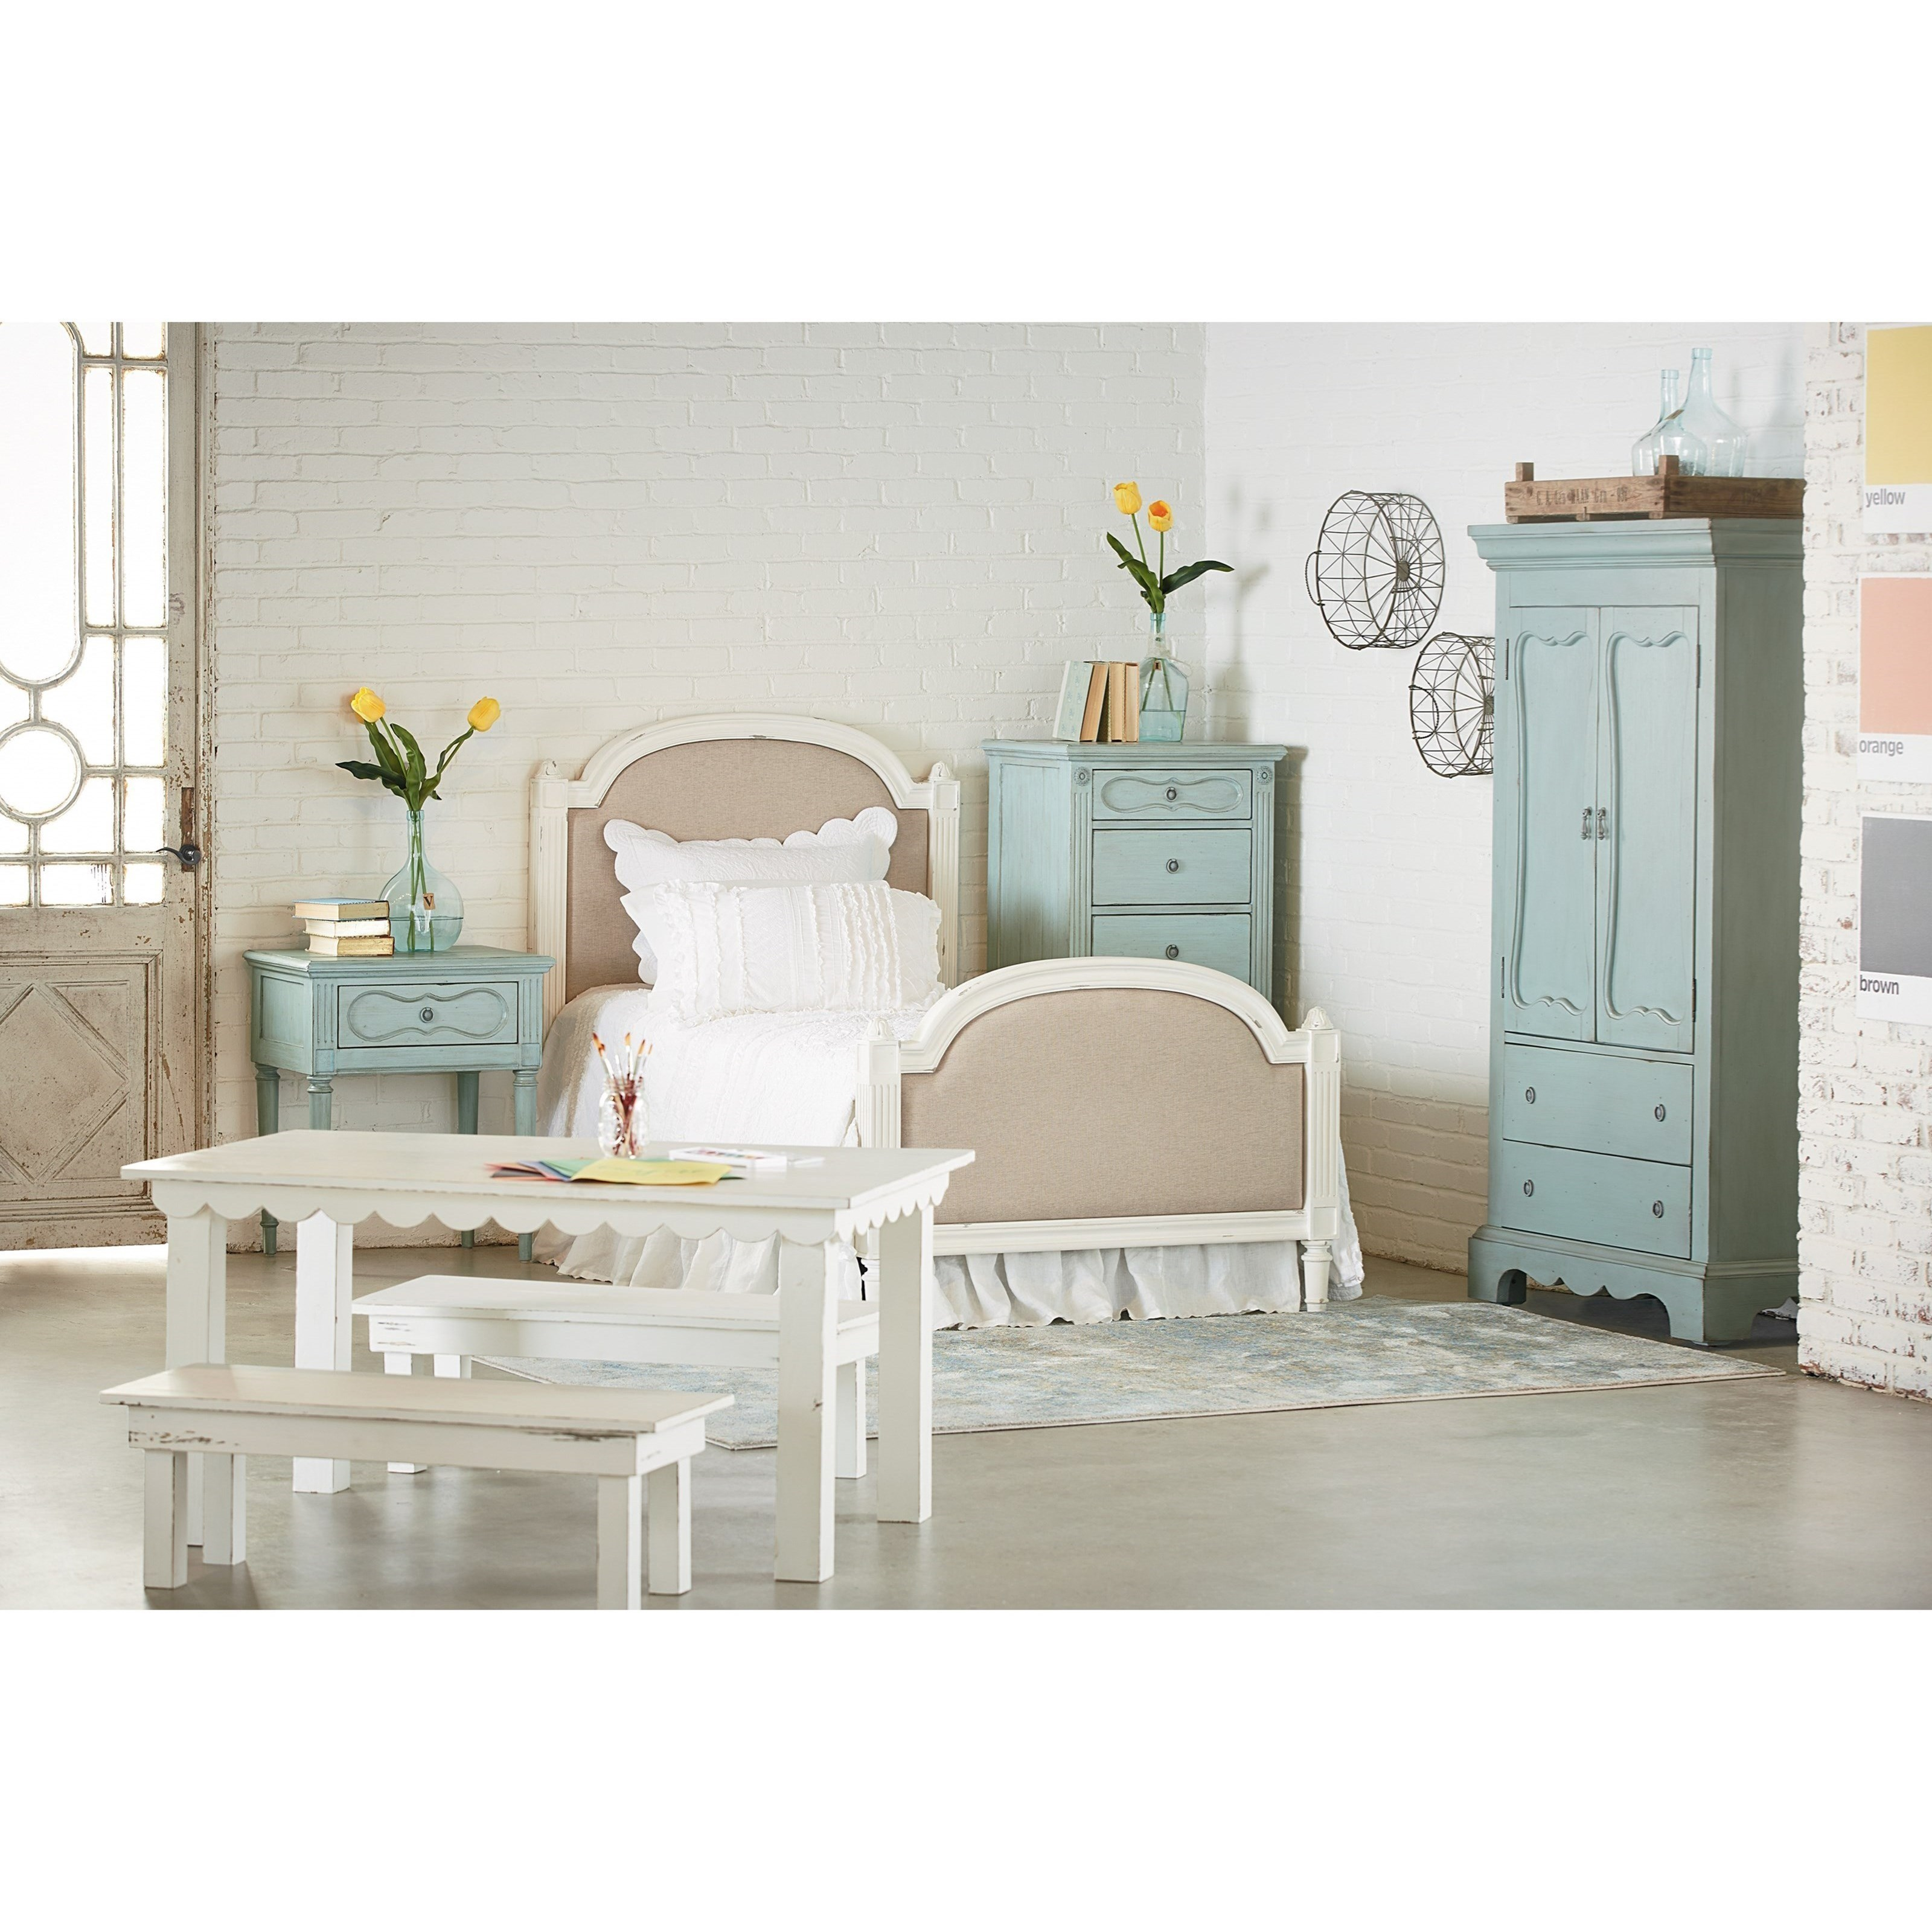 Magnolia Home By Joanna Gaines French Inspired Queen Bedroom Group Ivan Smith Furniture